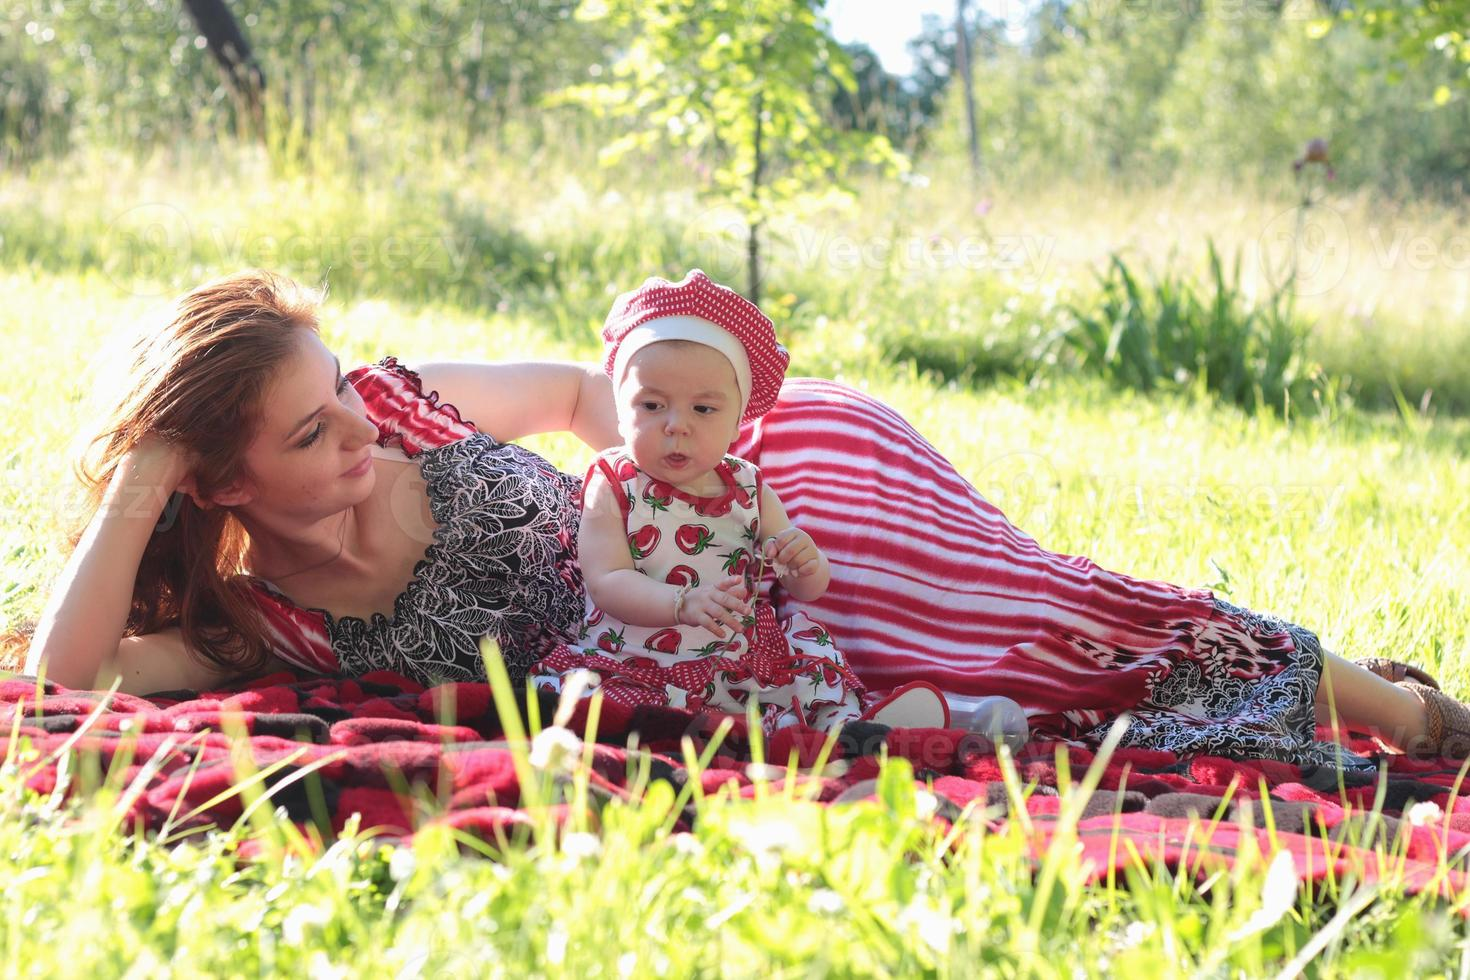 mother and daughter at a picnic photo